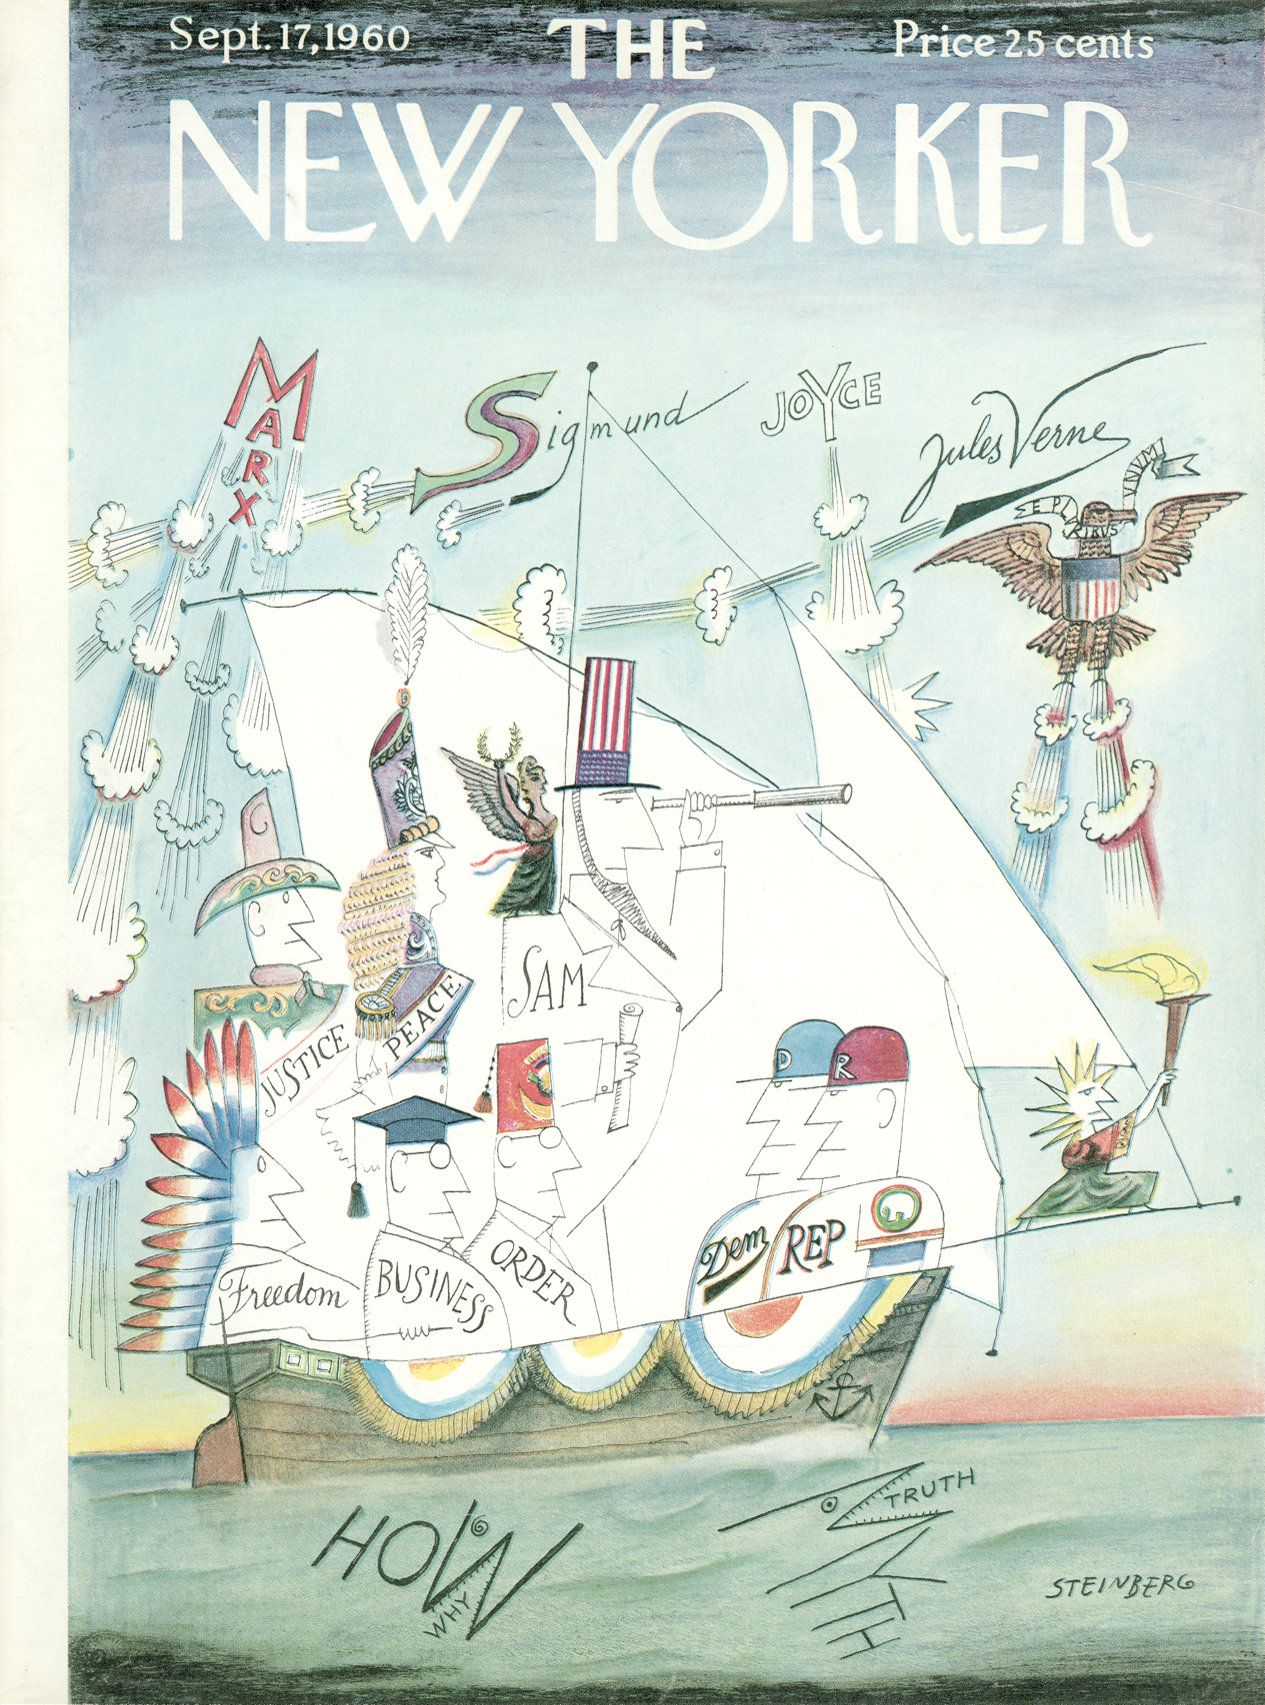 The New Yorker - Saturday, September 17, 1960 - Issue # 1857 - Vol ...